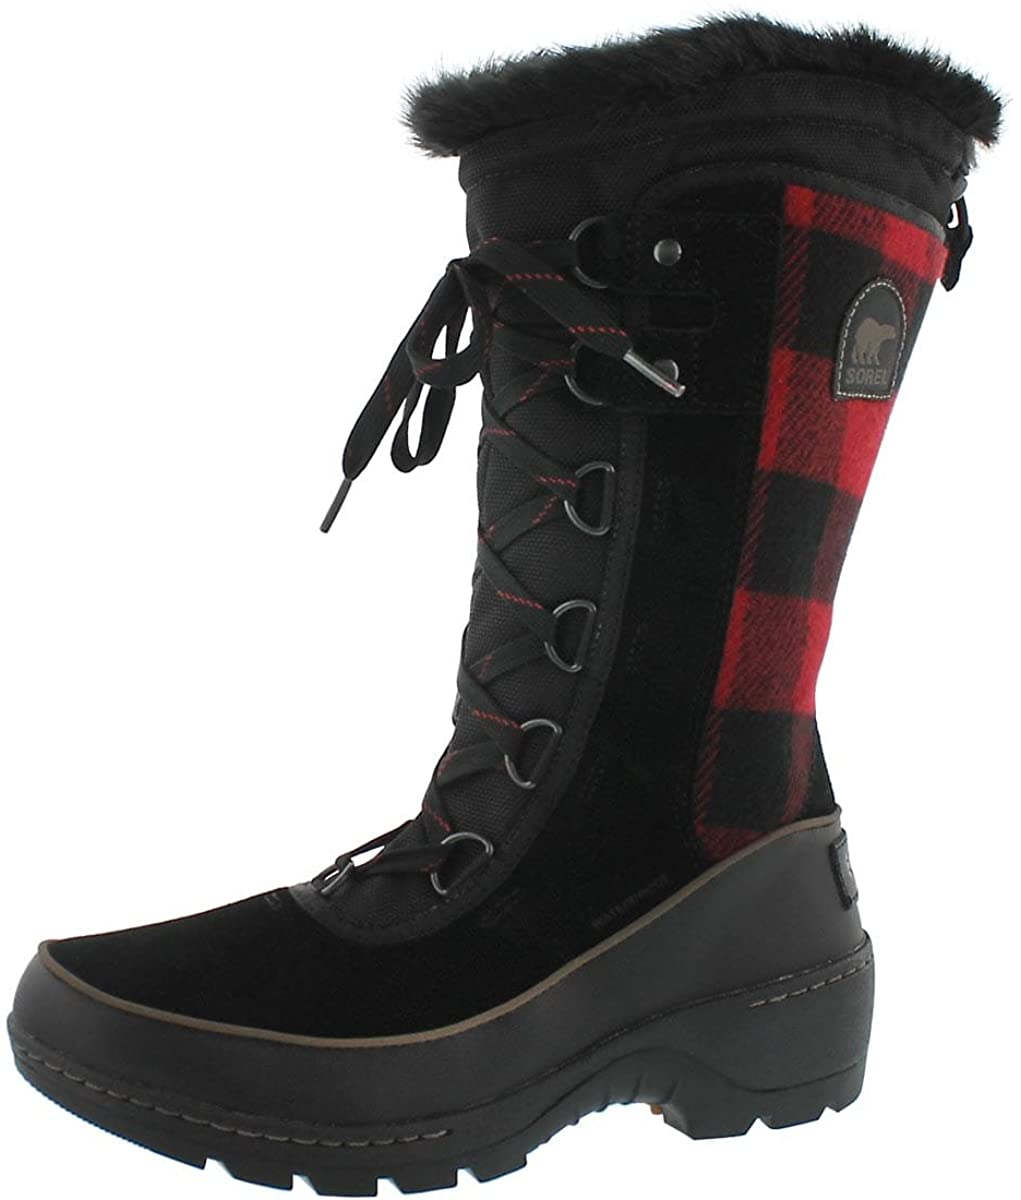 Sorel Tivoli III High Women's Outdoor Boot